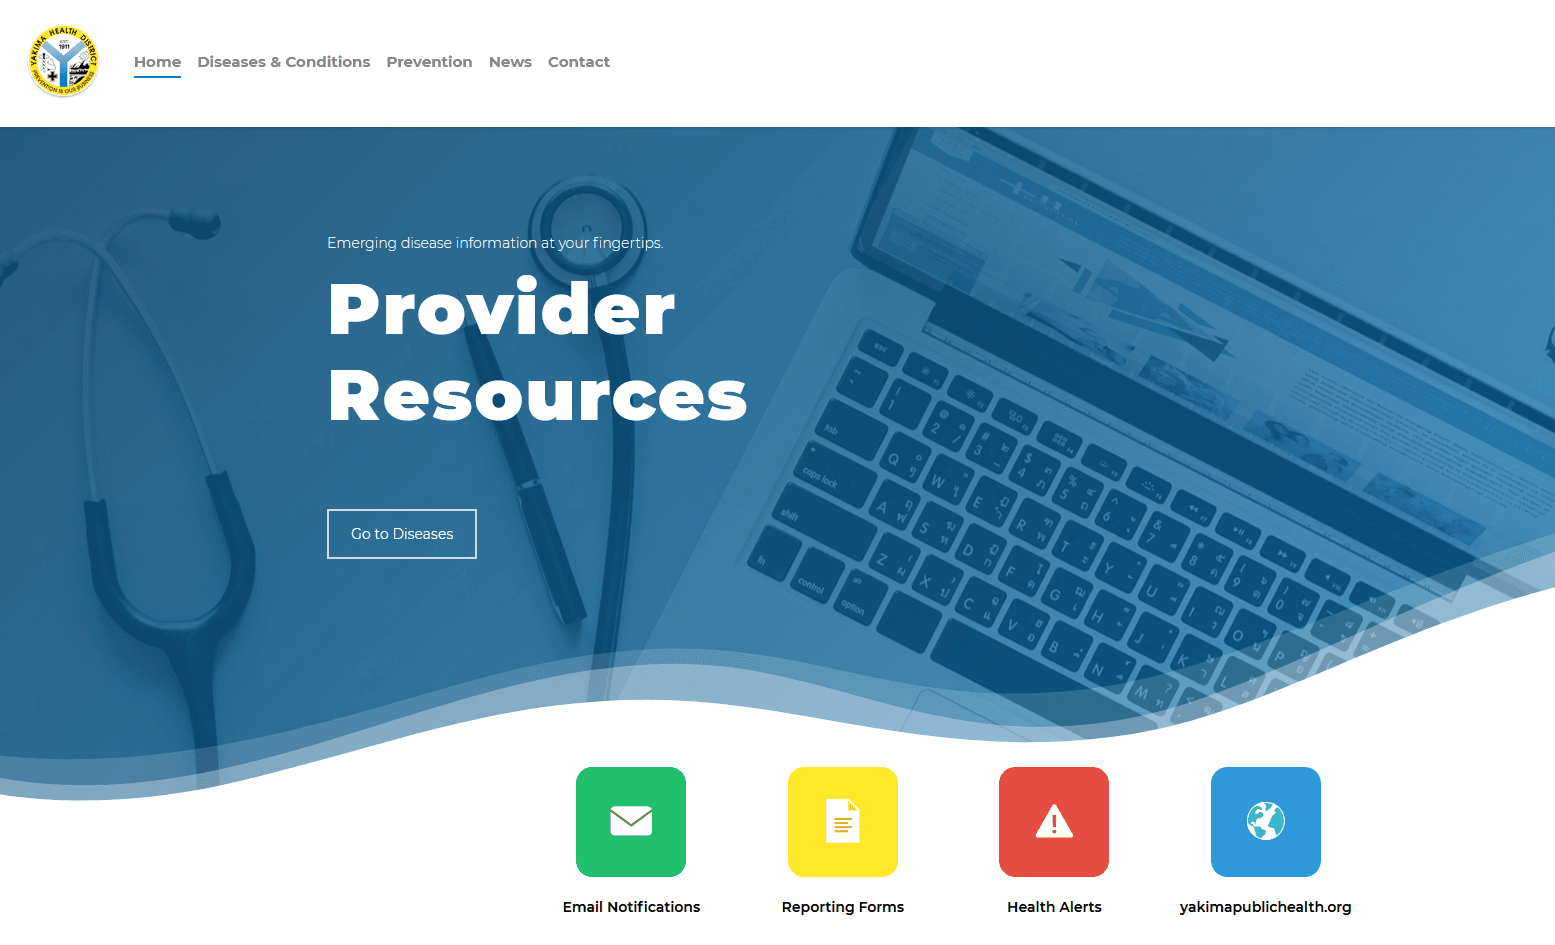 New Provider Resource Page